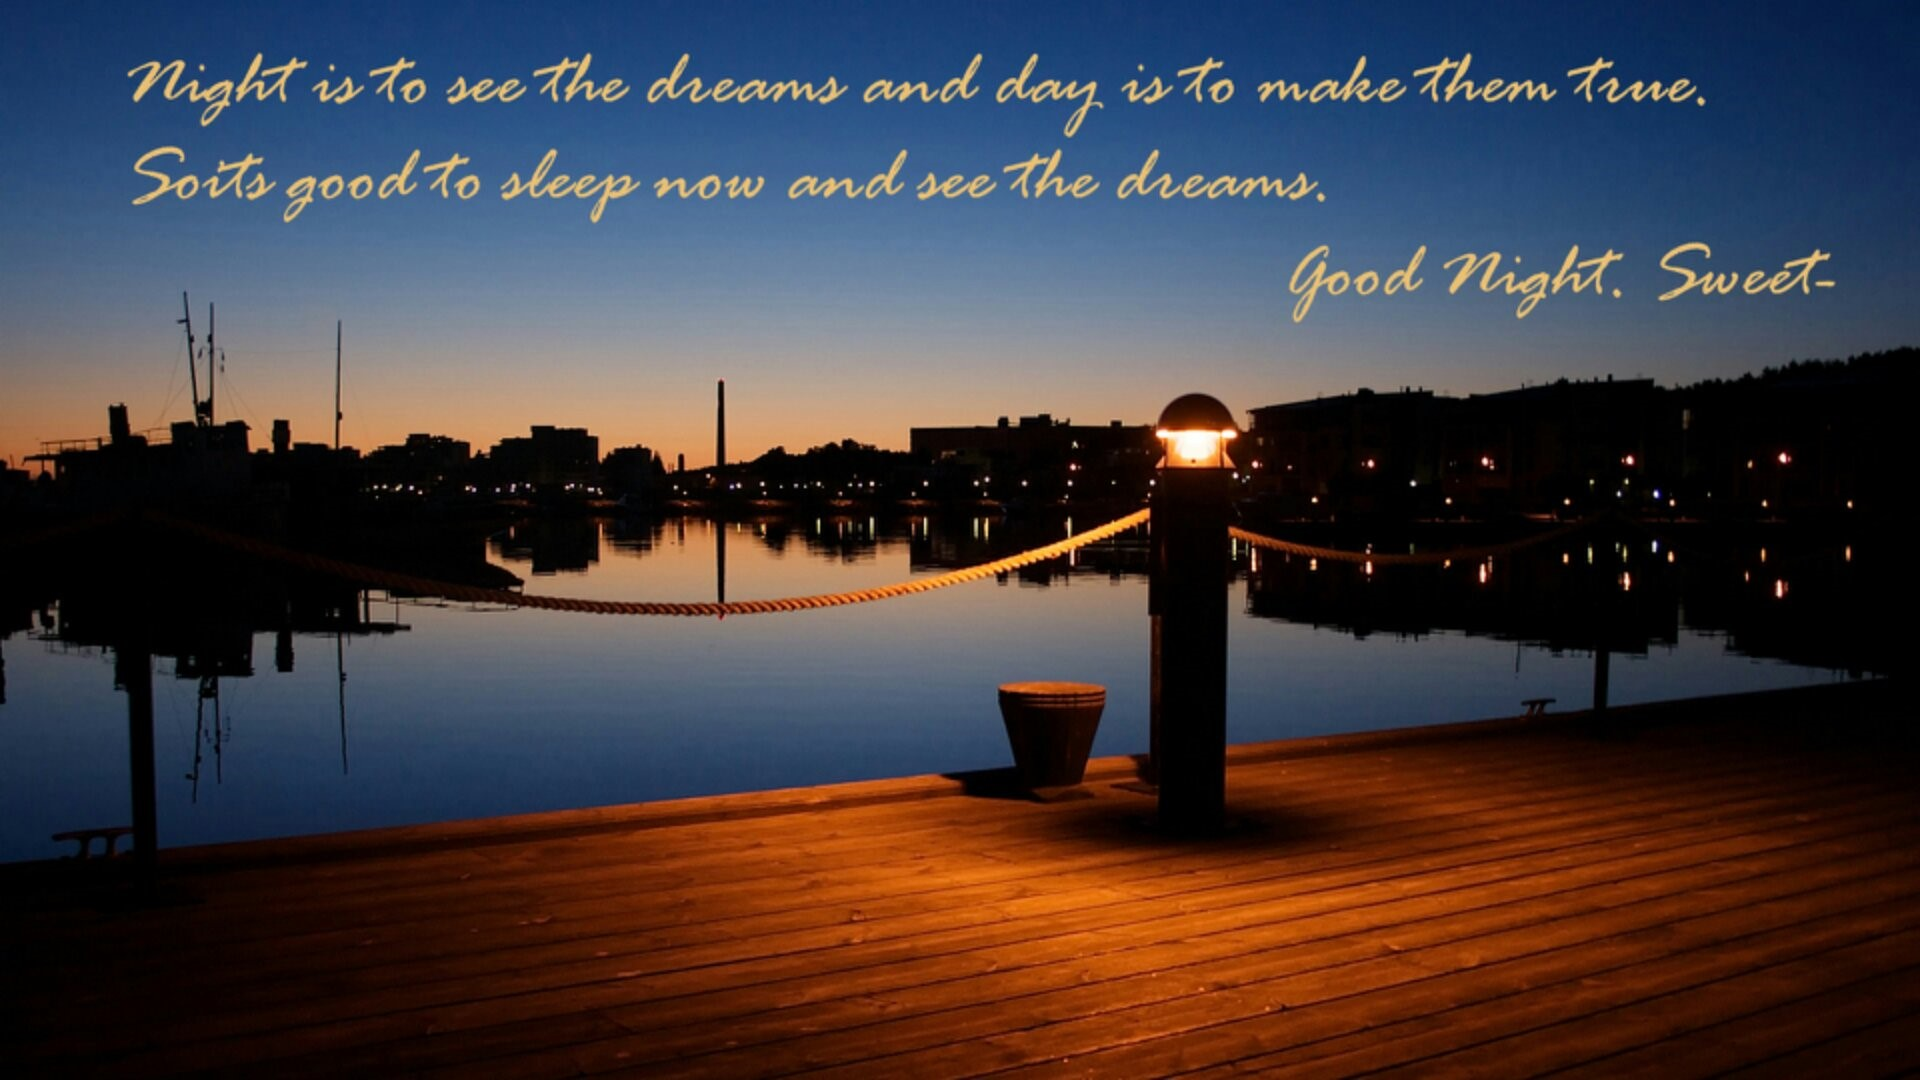 Beautiful Good Nights Quotes Wishes Hd Images - Quotes About Night View - HD Wallpaper